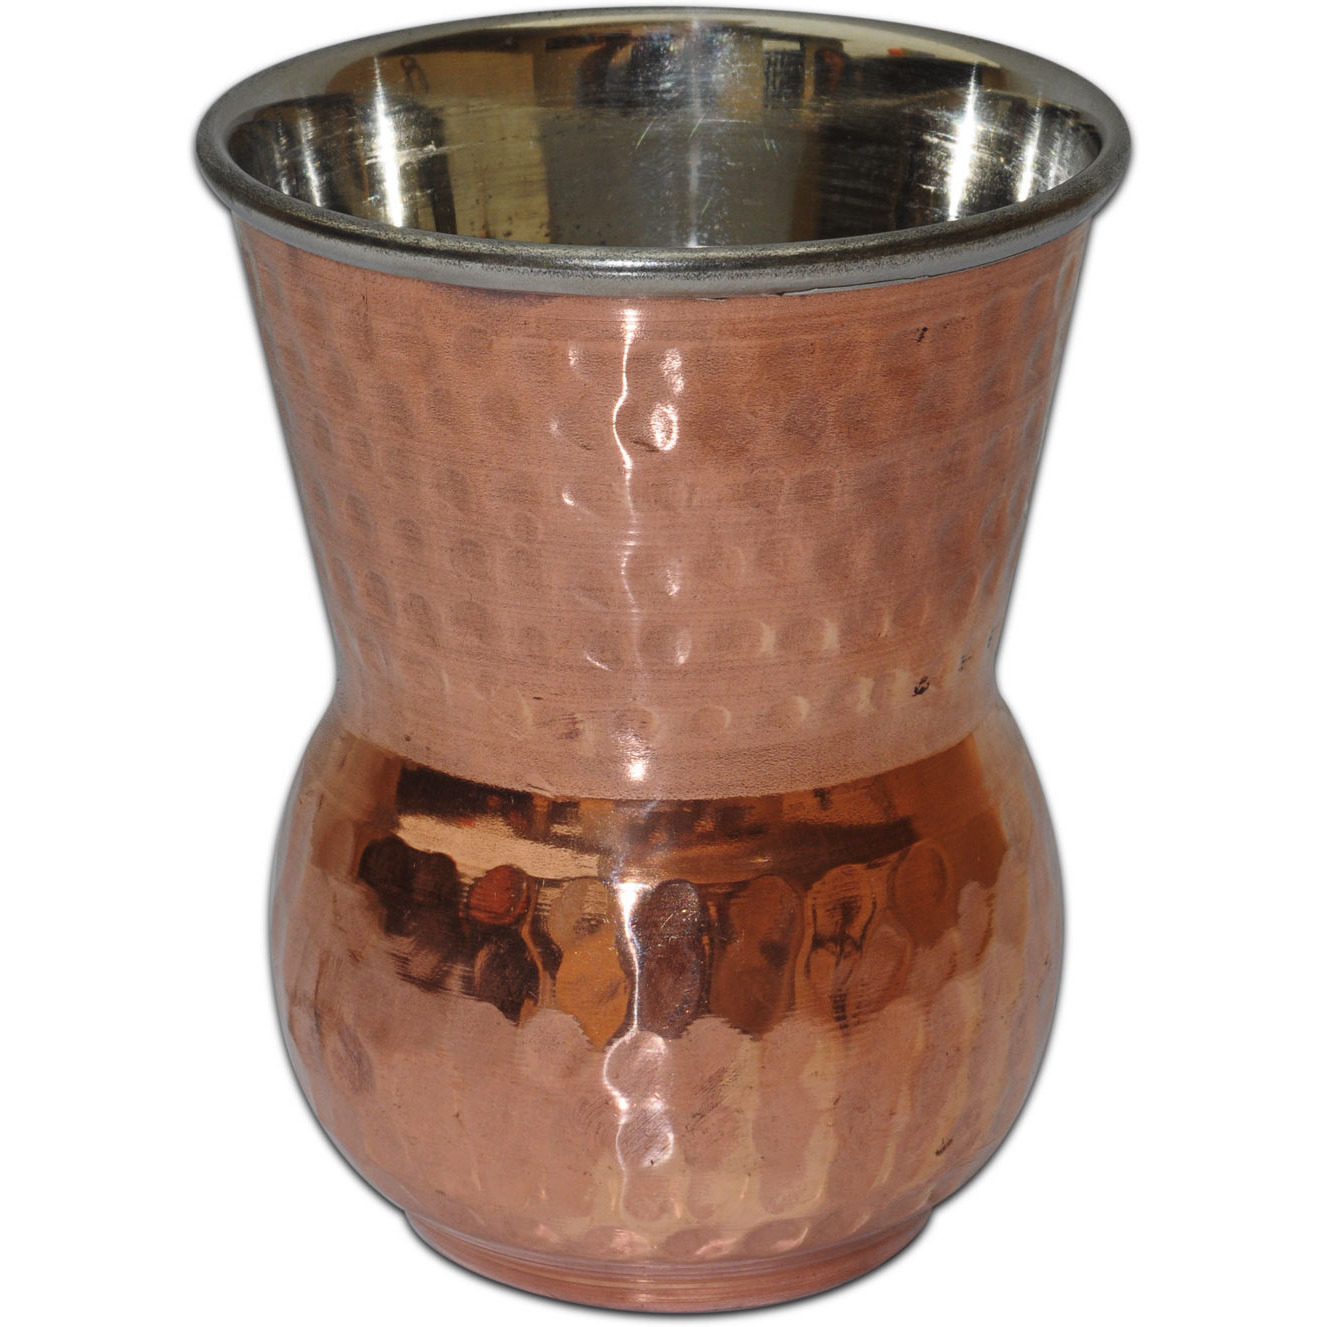 Set of 4 - Prisha India Craft B. Copper Muglai Matka Glass Inside Stainless Steel Hammered Style Drinkware Tumbler Handmade Copper Cups - Traveller's Copper Mug